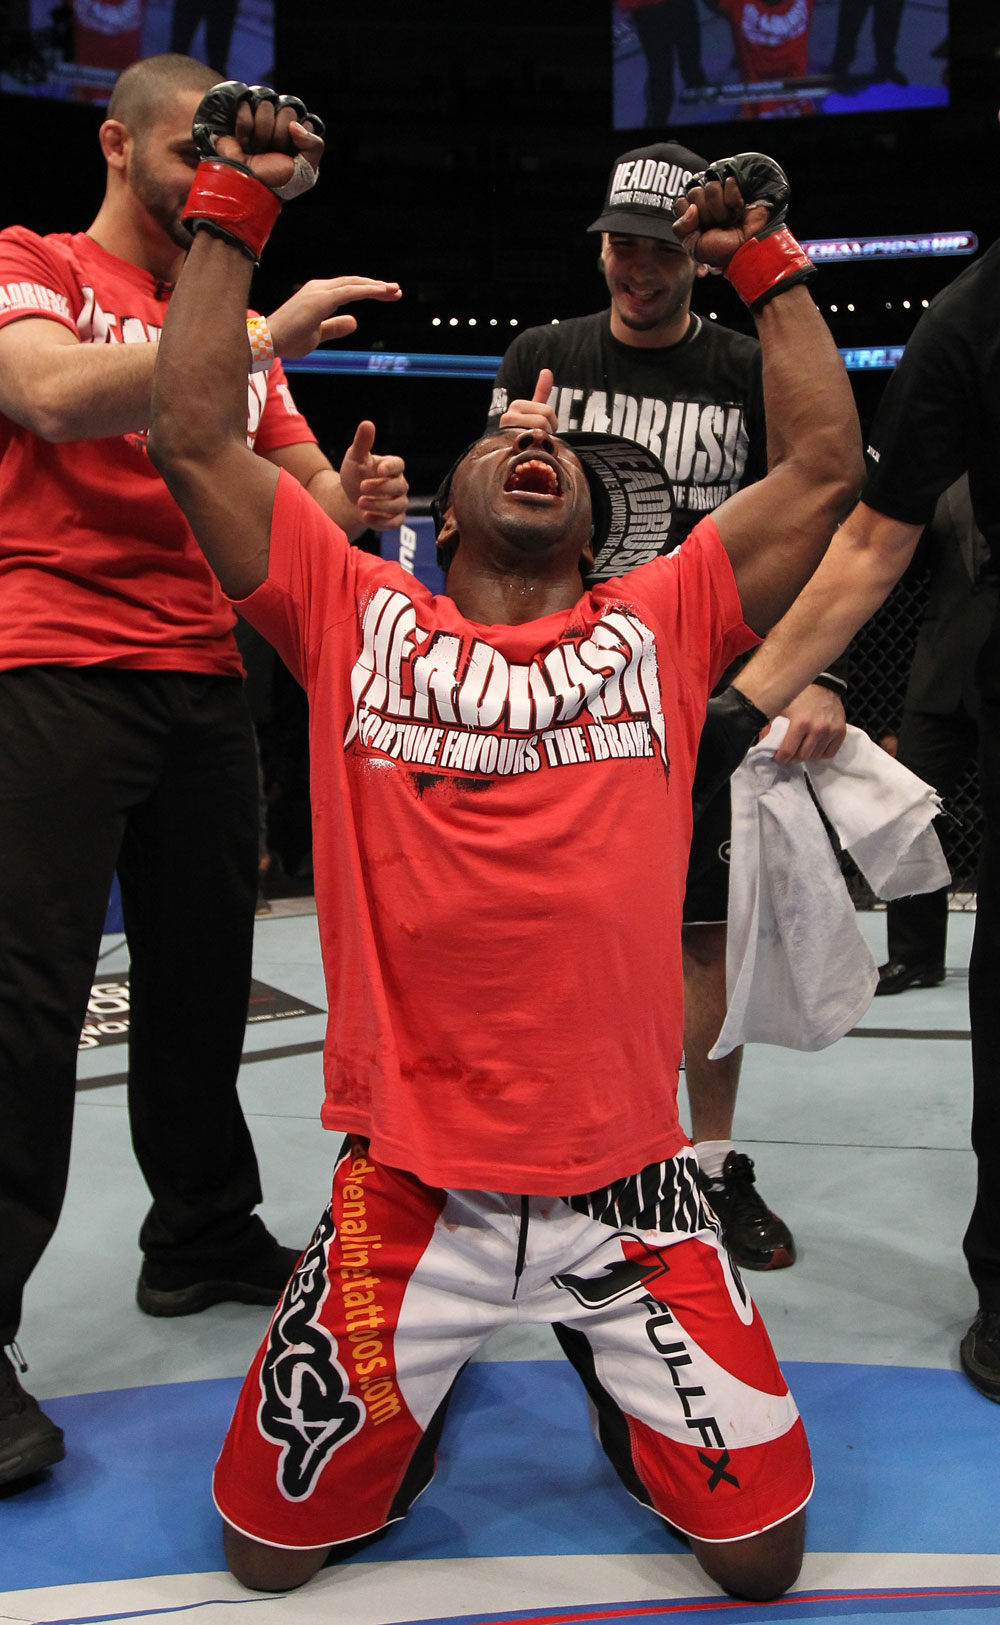 TORONTO, ON - DECEMBER 10:  Yves Jabouin reacts after defeating Walel Watson by split decision during the UFC 140 event at Air Canada Centre on December 10, 2011 in Toronto, Ontario, Canada.  (Photo by Nick Laham/Zuffa LLC/Zuffa LLC via Getty Images)